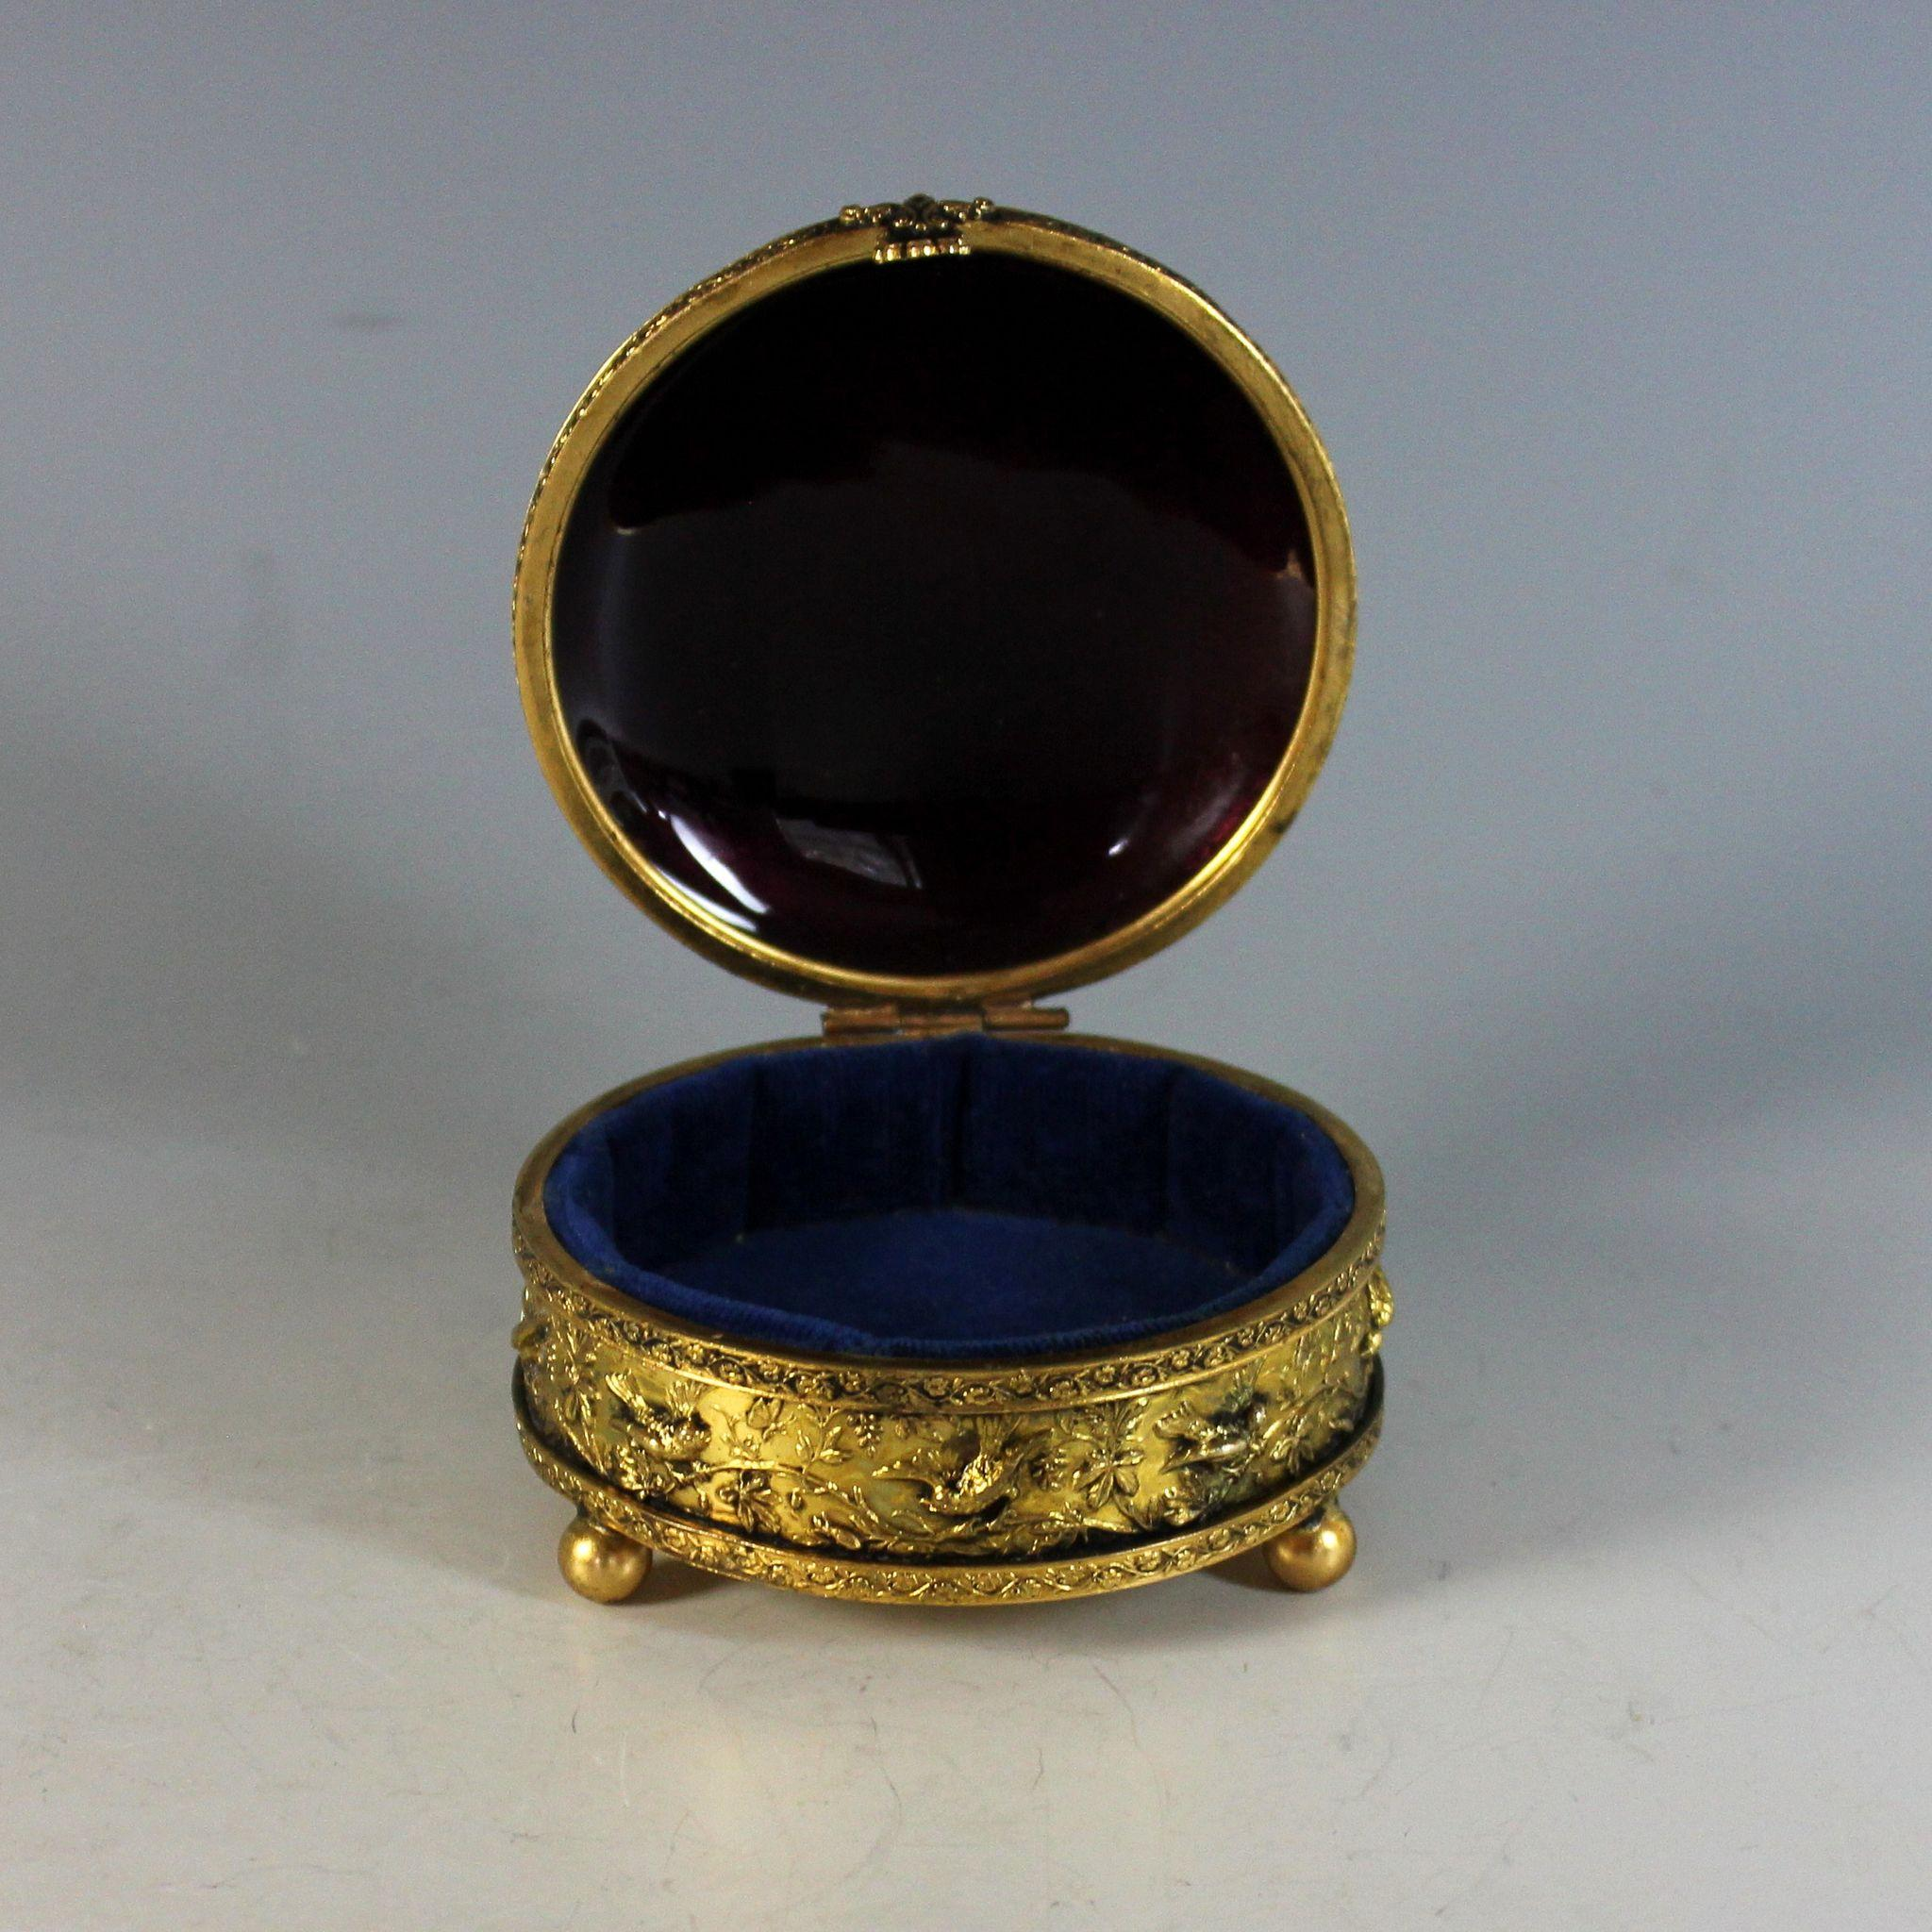 Limoges France Porcelain Gold Plated Trinket Box / Jewelry |Limoges Jewelry